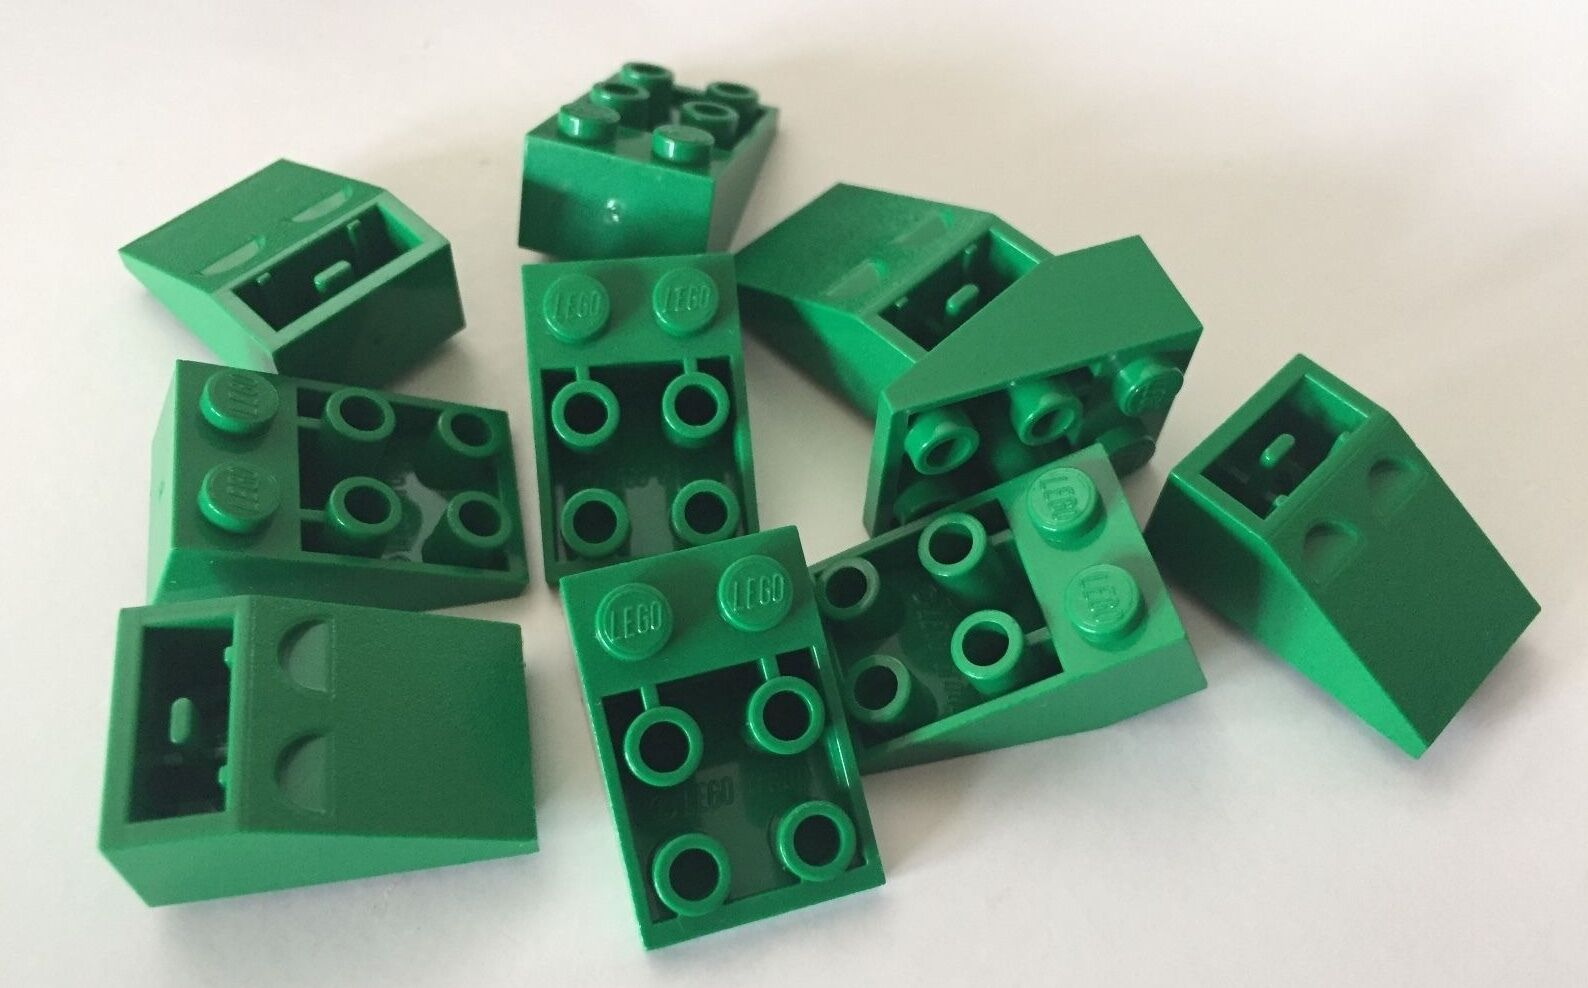 Lego 100 New Dark Green Slopes Inverted 33 3 x 1 Sloped Pieces